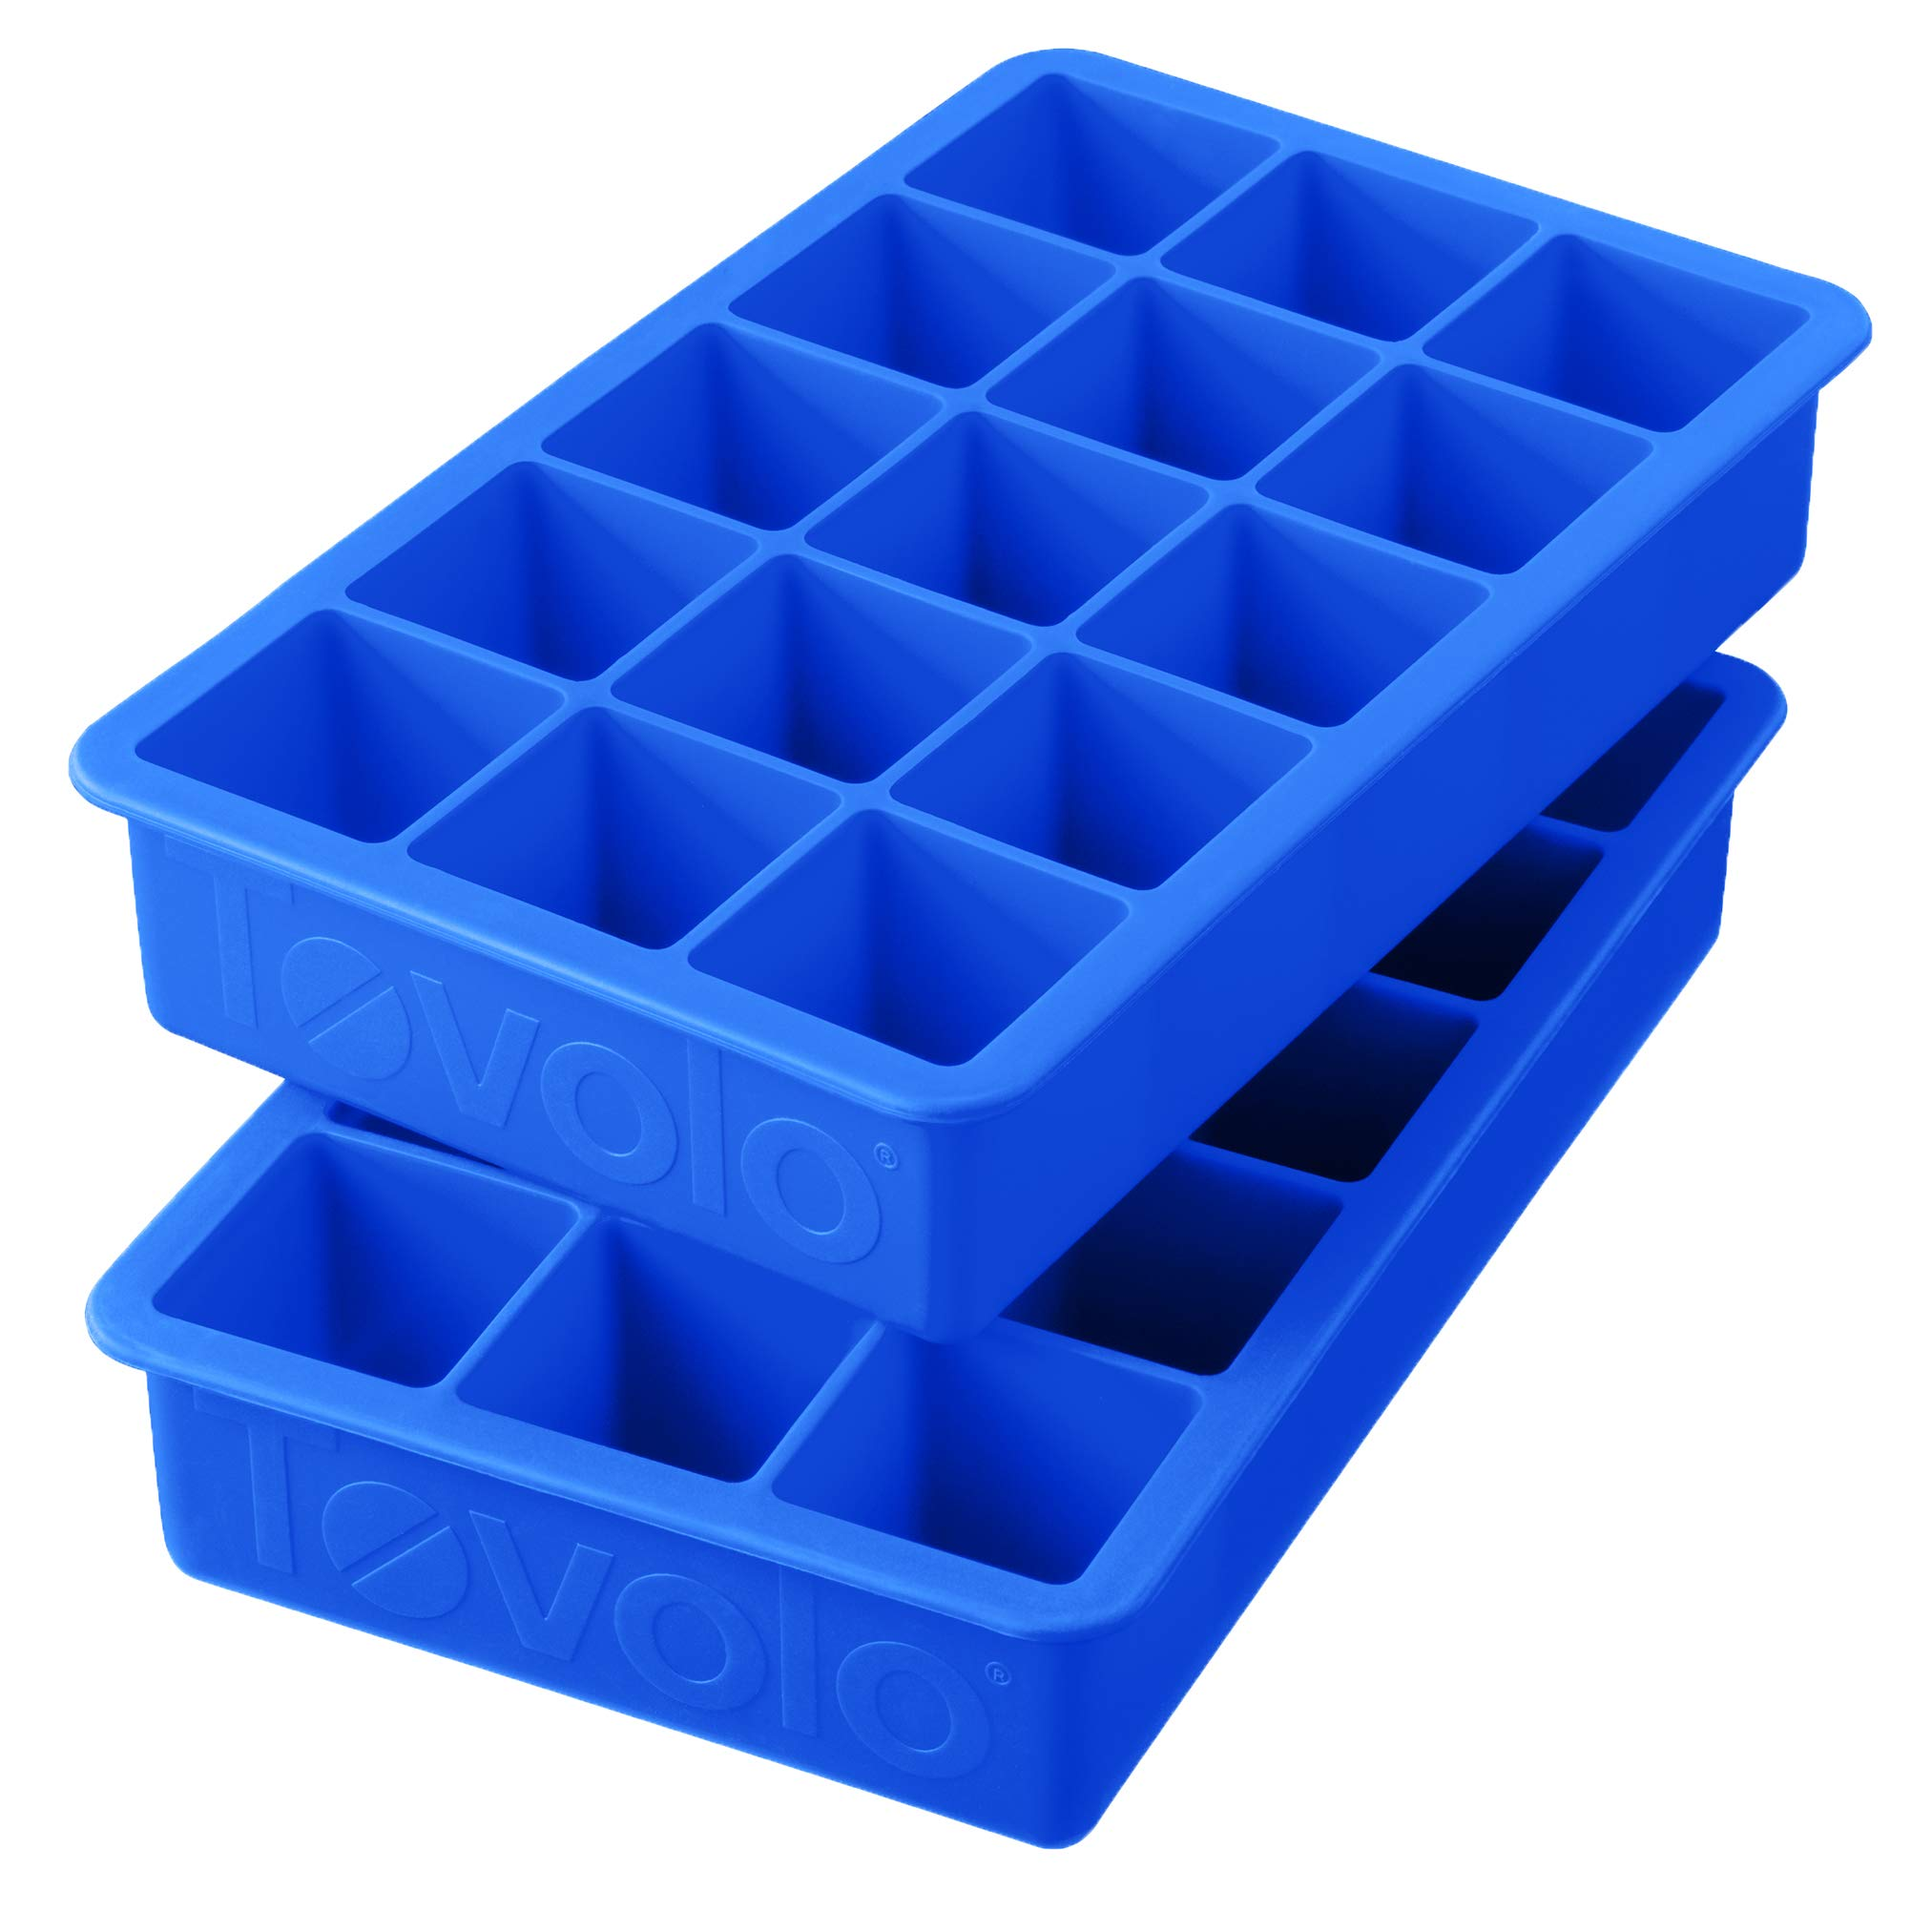 Tovolo Perfect Ice Mold Freezer Tray of 1.25-Inch Cubes for Whiskey, Bourbon, Spirits & Liquor, BPA-Free Silicone, Fade Resistant, Set of 2, Capri Blue